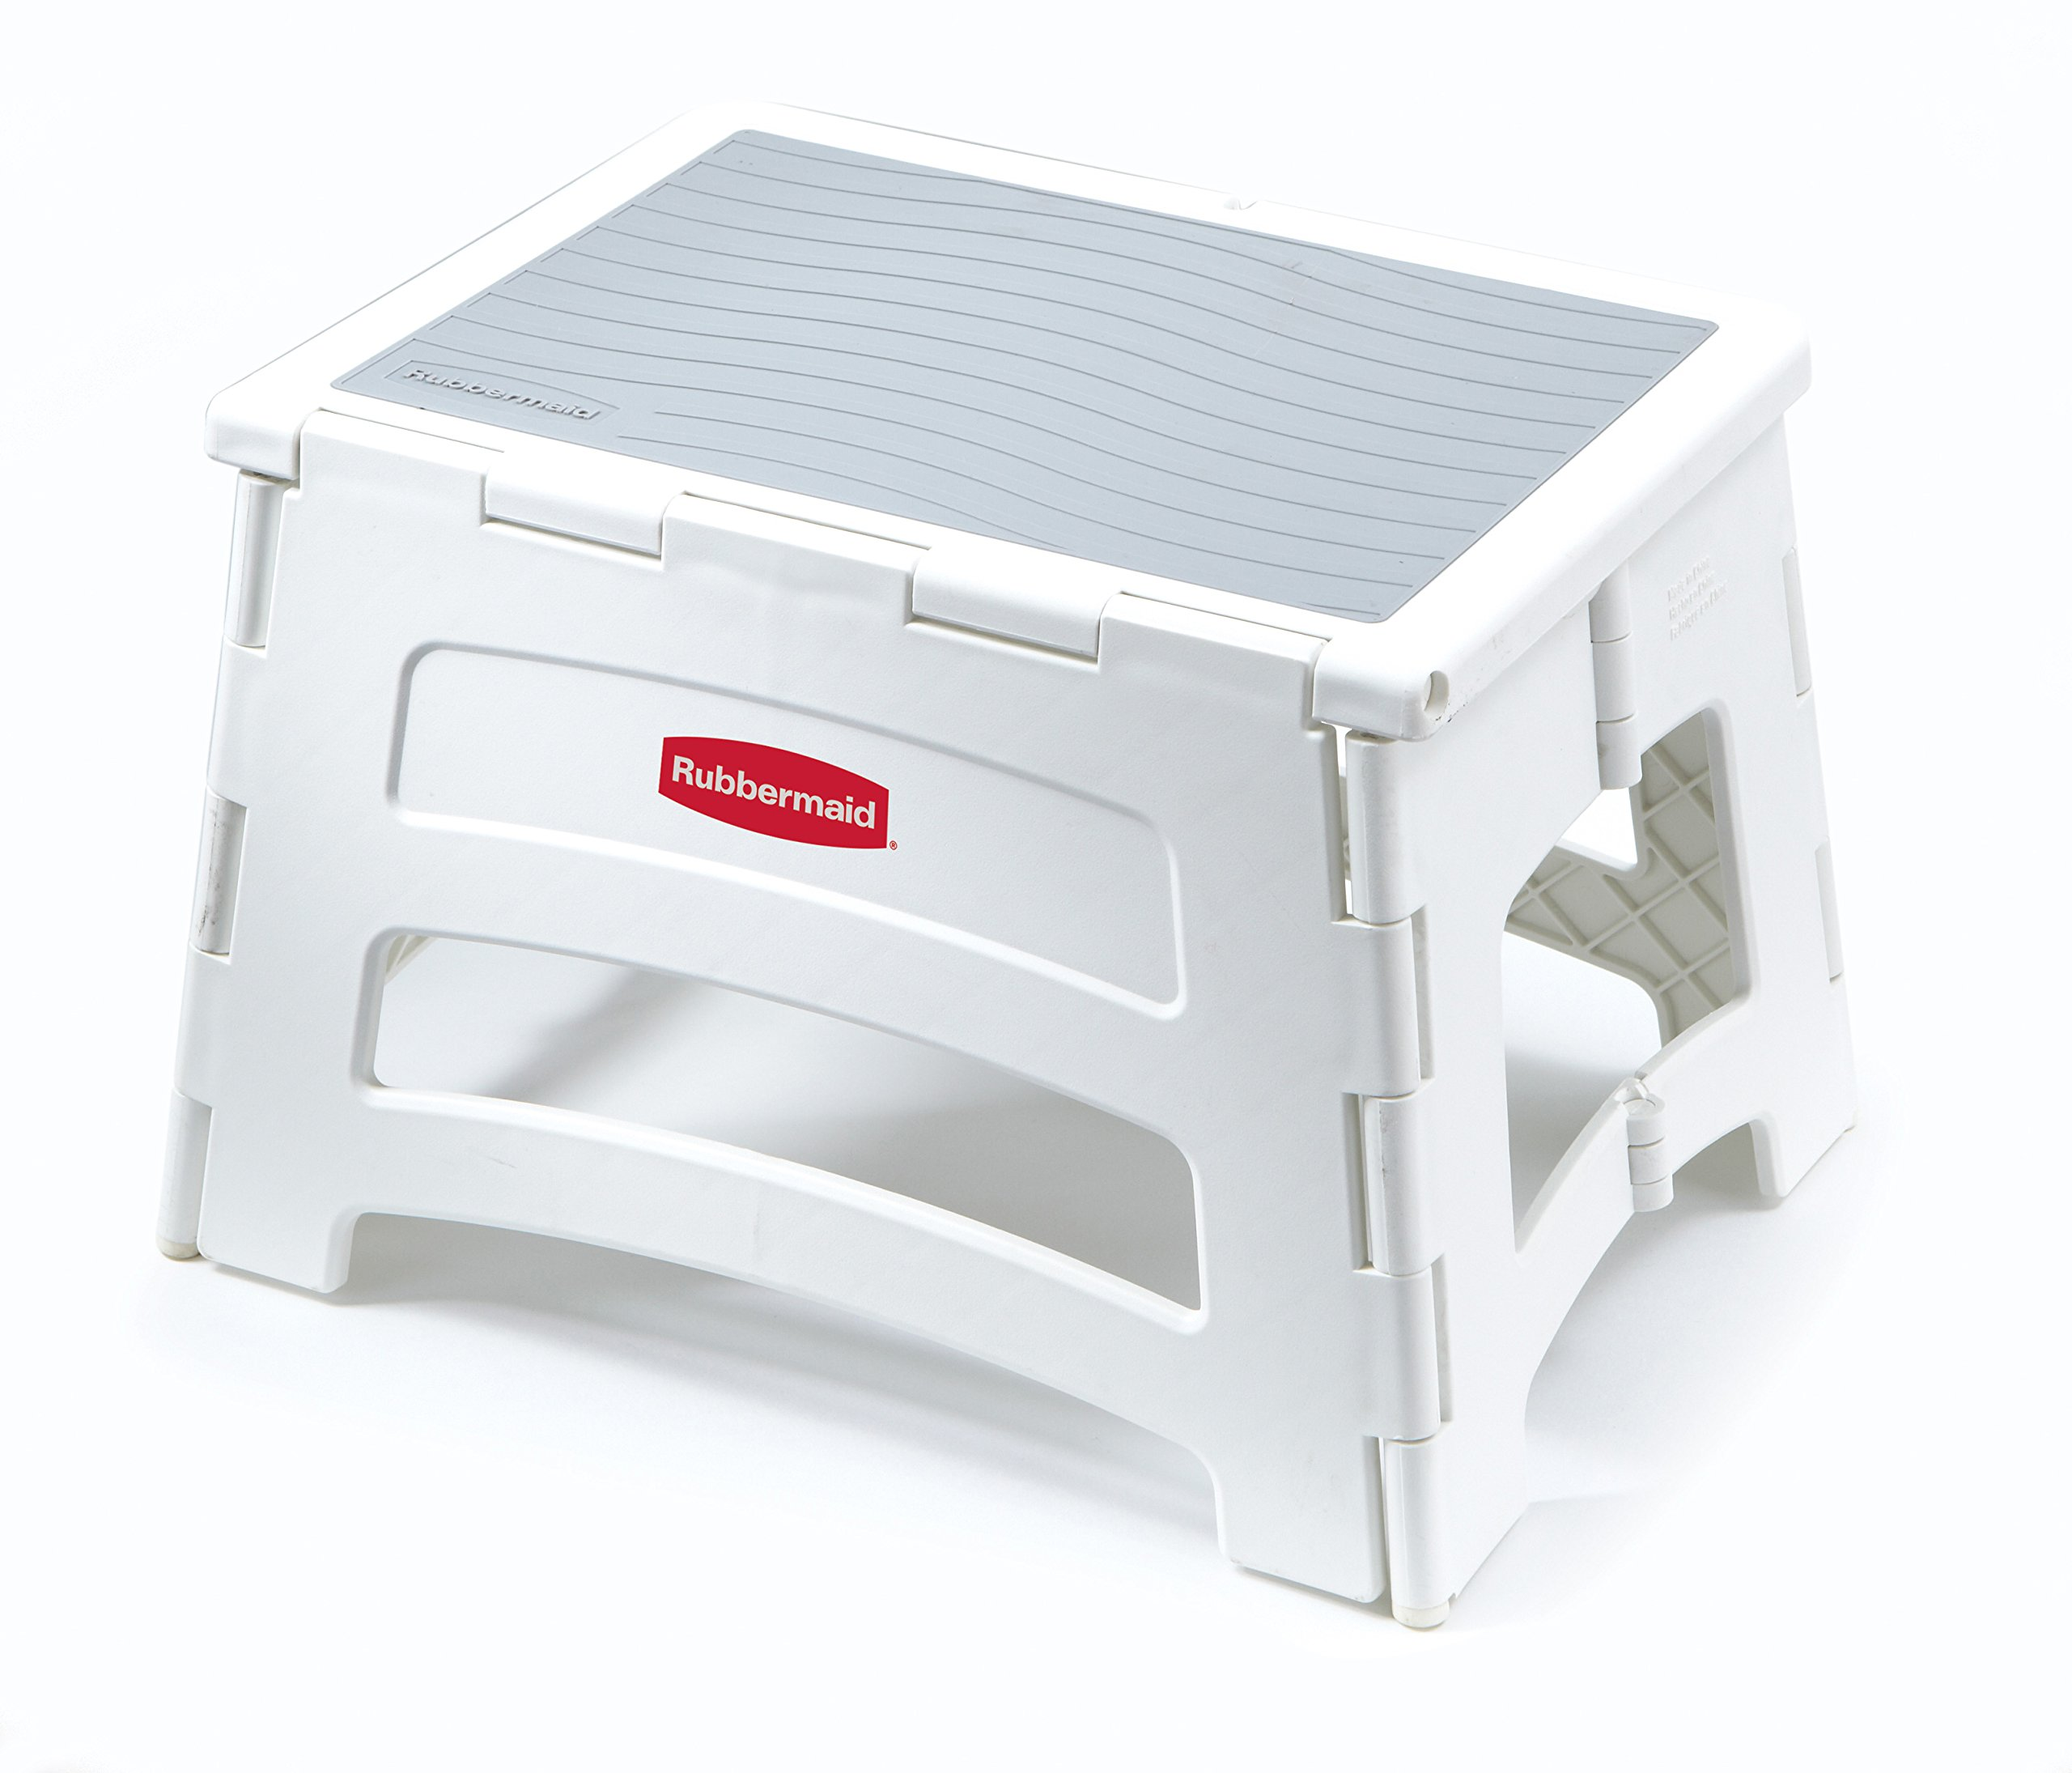 Rubbermaid RM-PL1W Folding 1-Step Plastic Stool, 300-pound Capacity, White by Rubbermaid